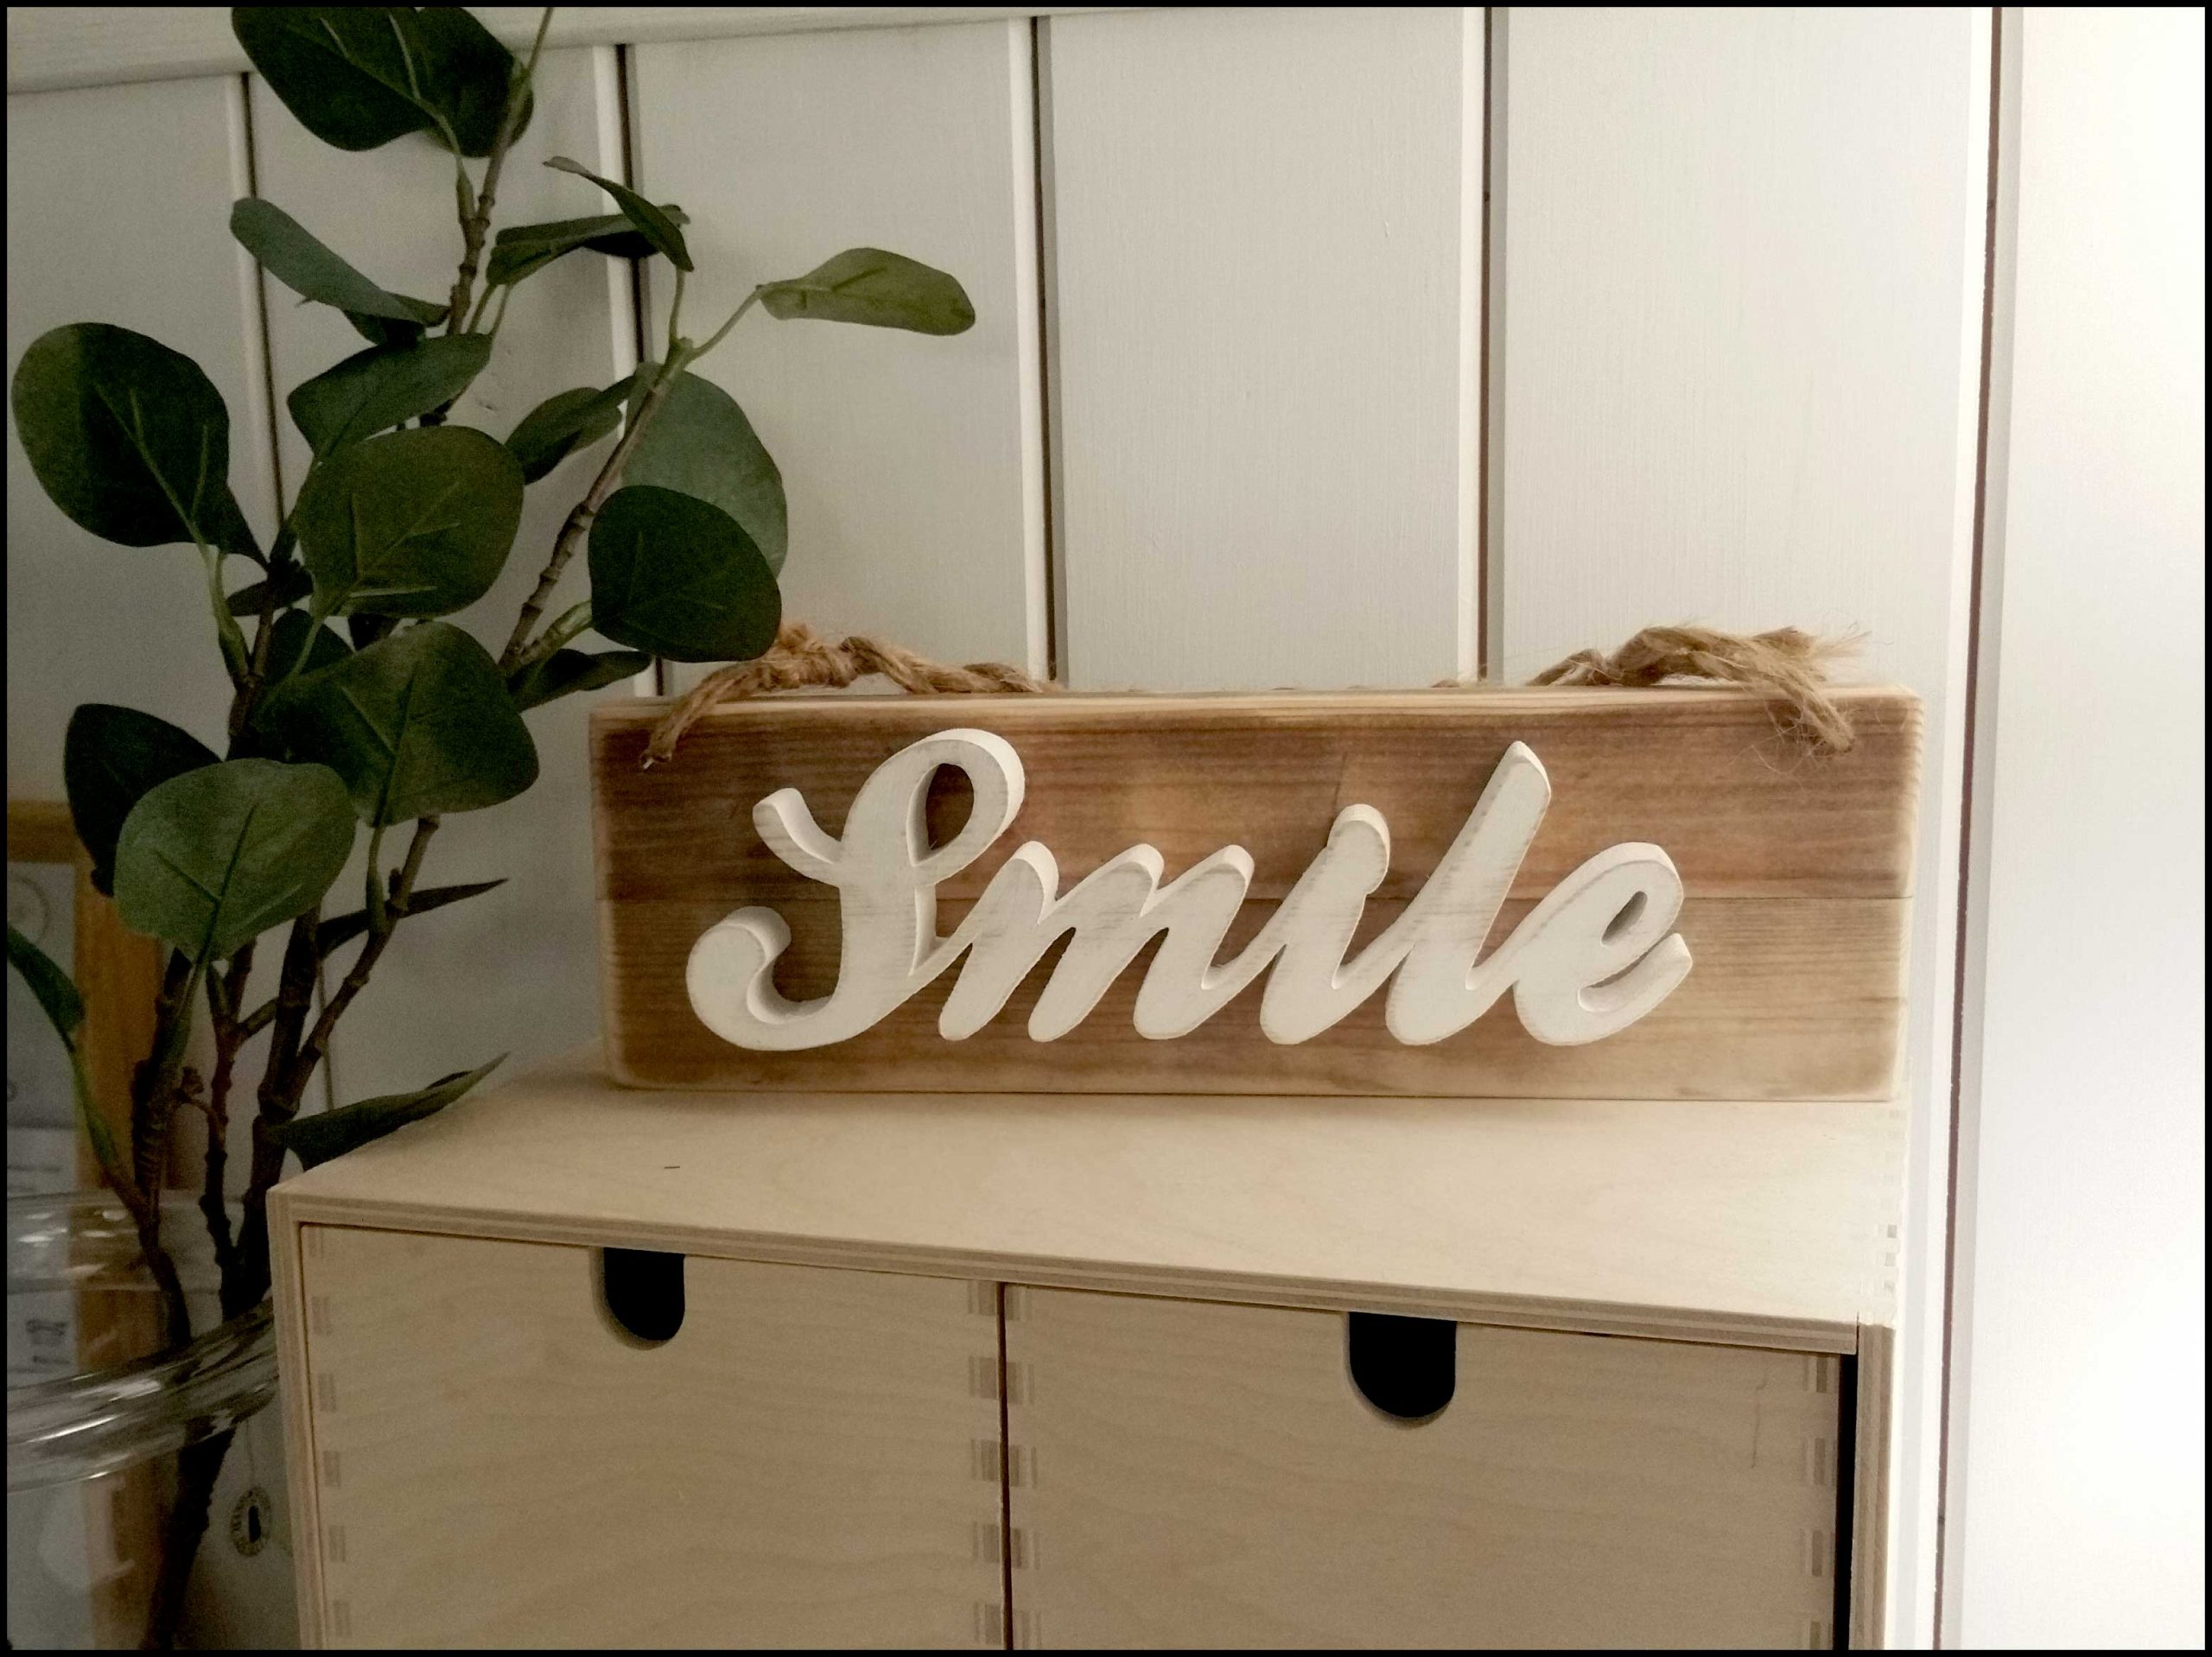 Smile wall hanging sign Image